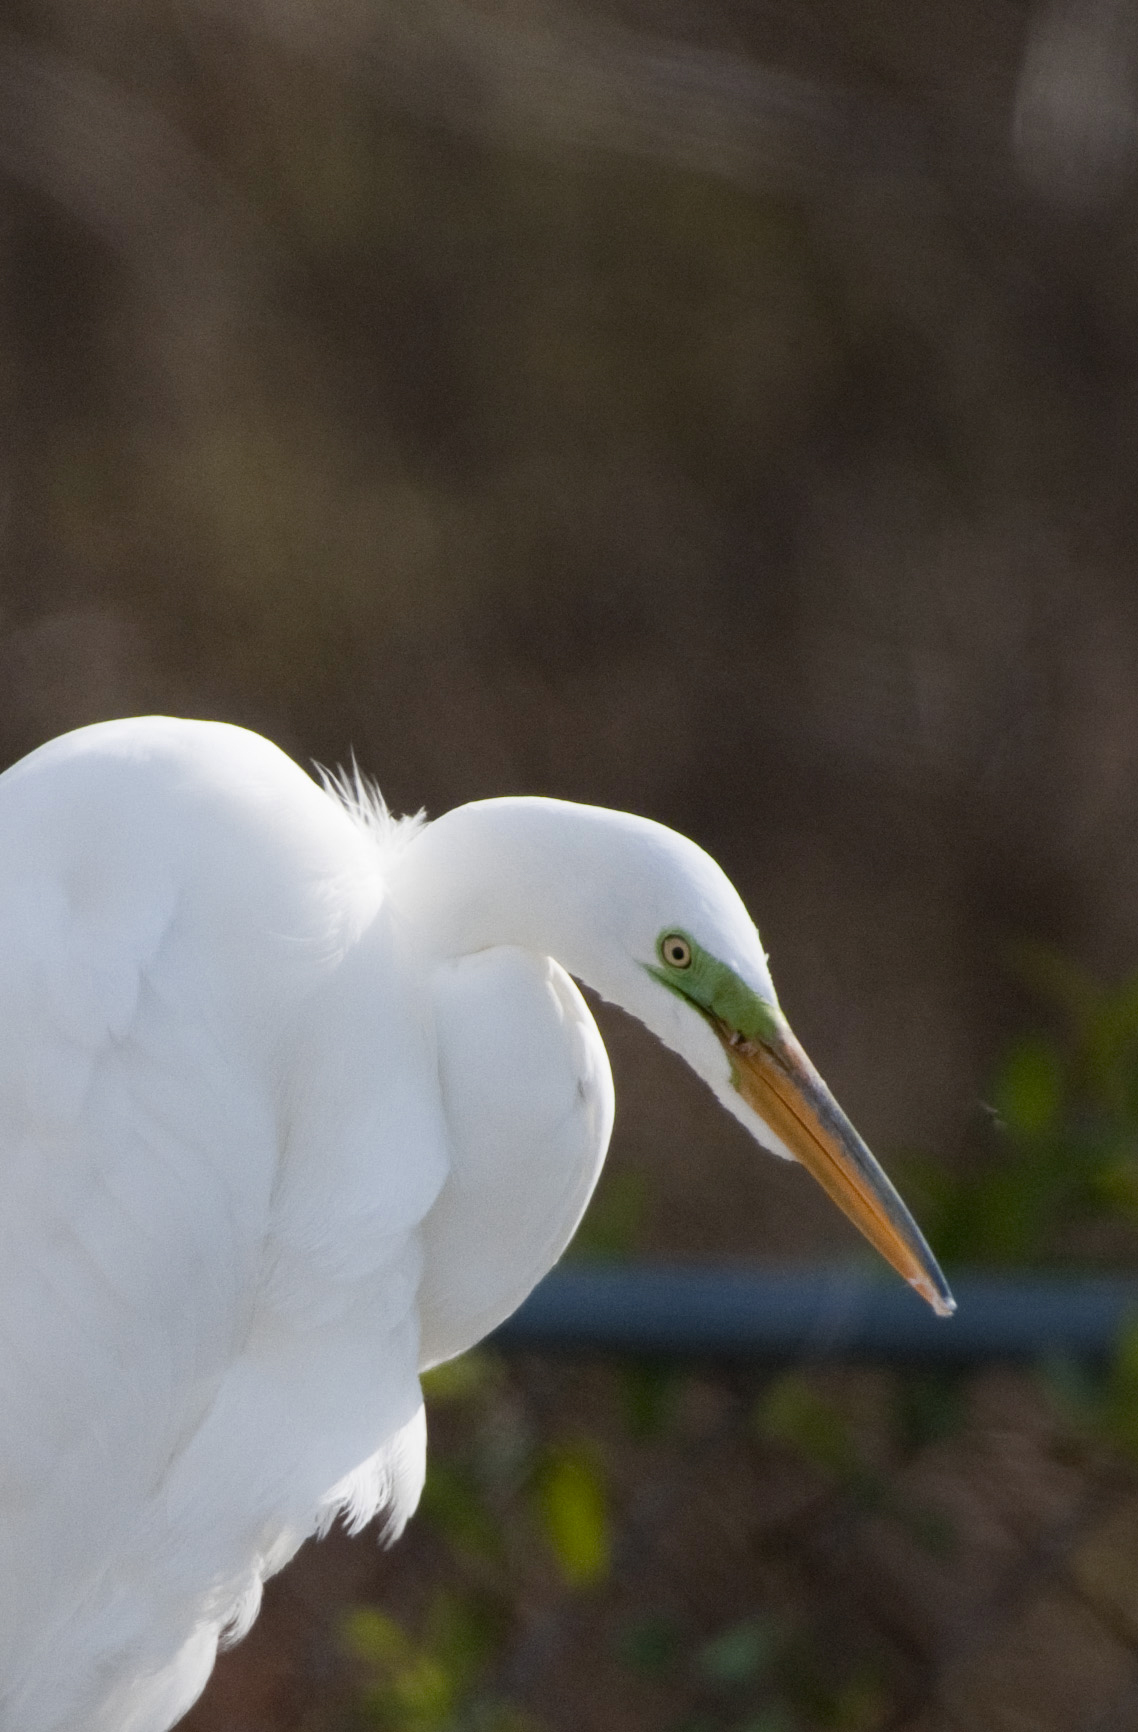 great white egret in mating plumage